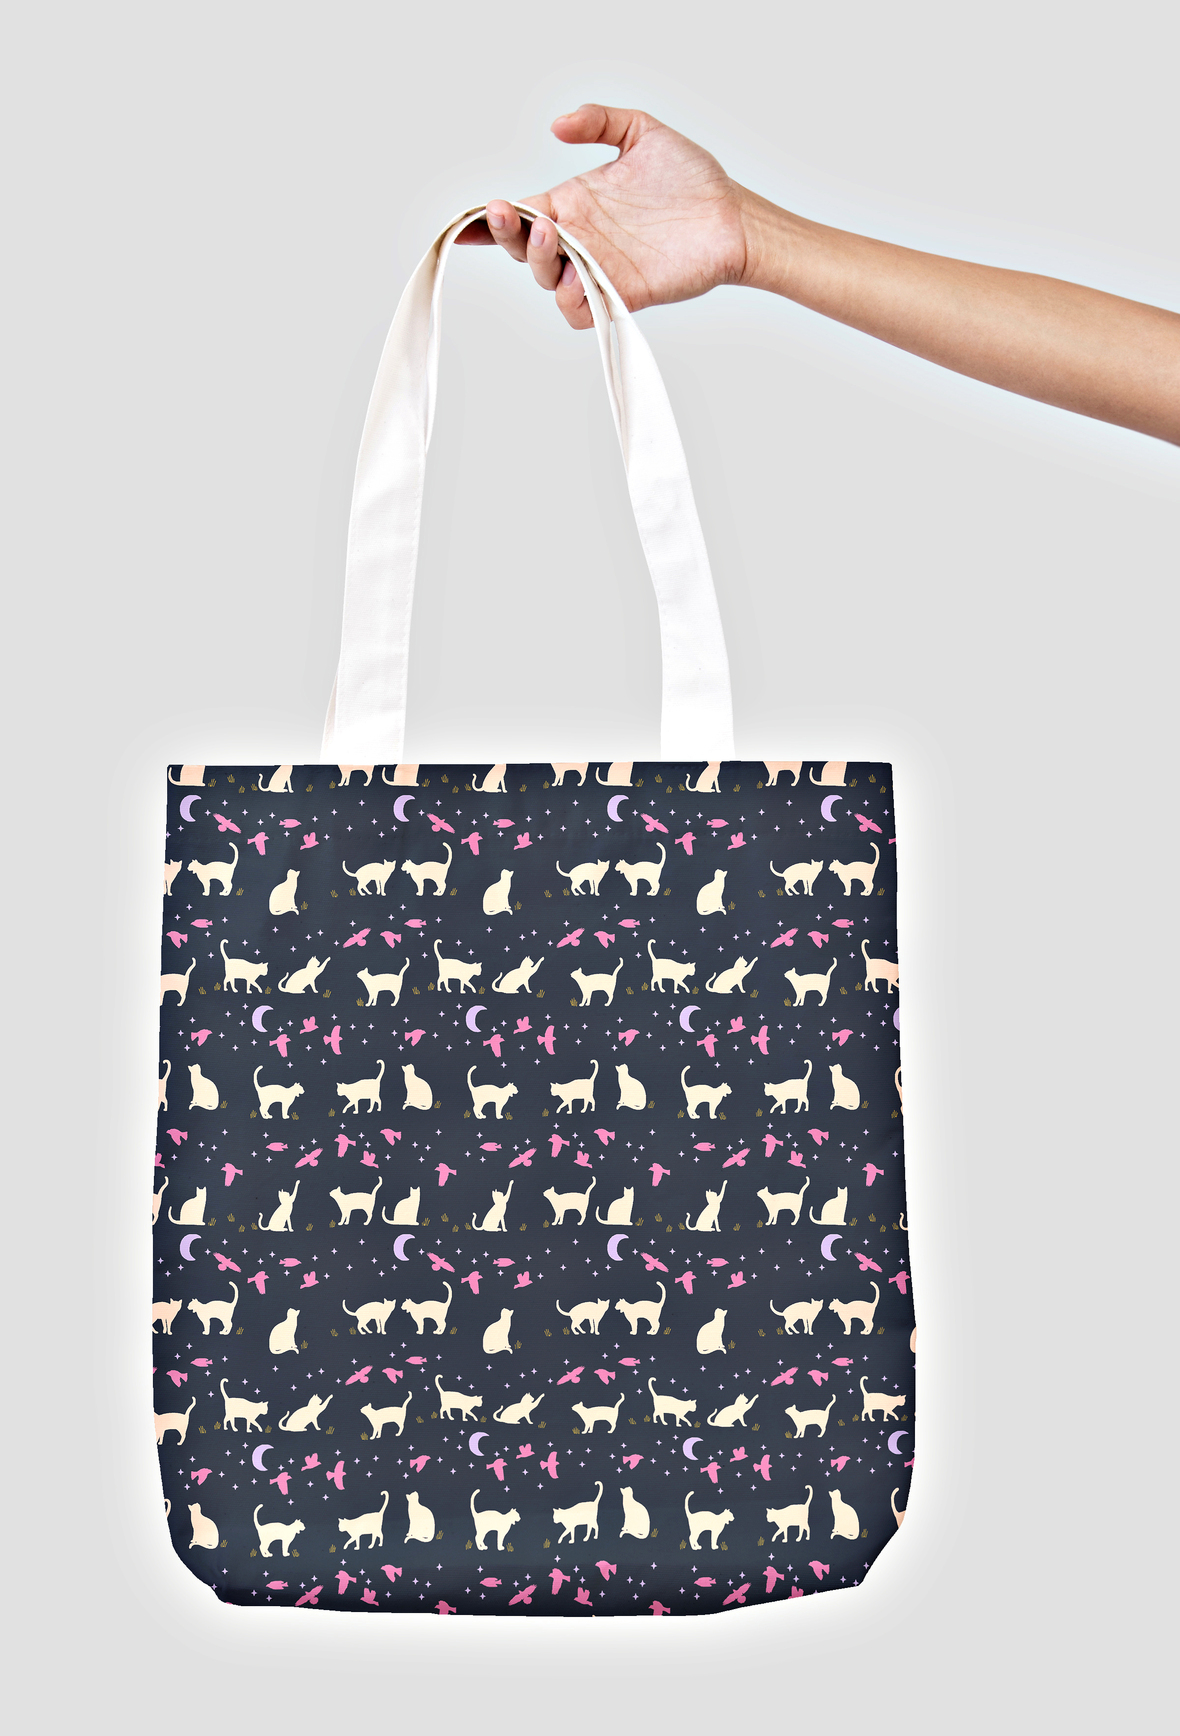 Tote - Small Ally Cats in Eclipse